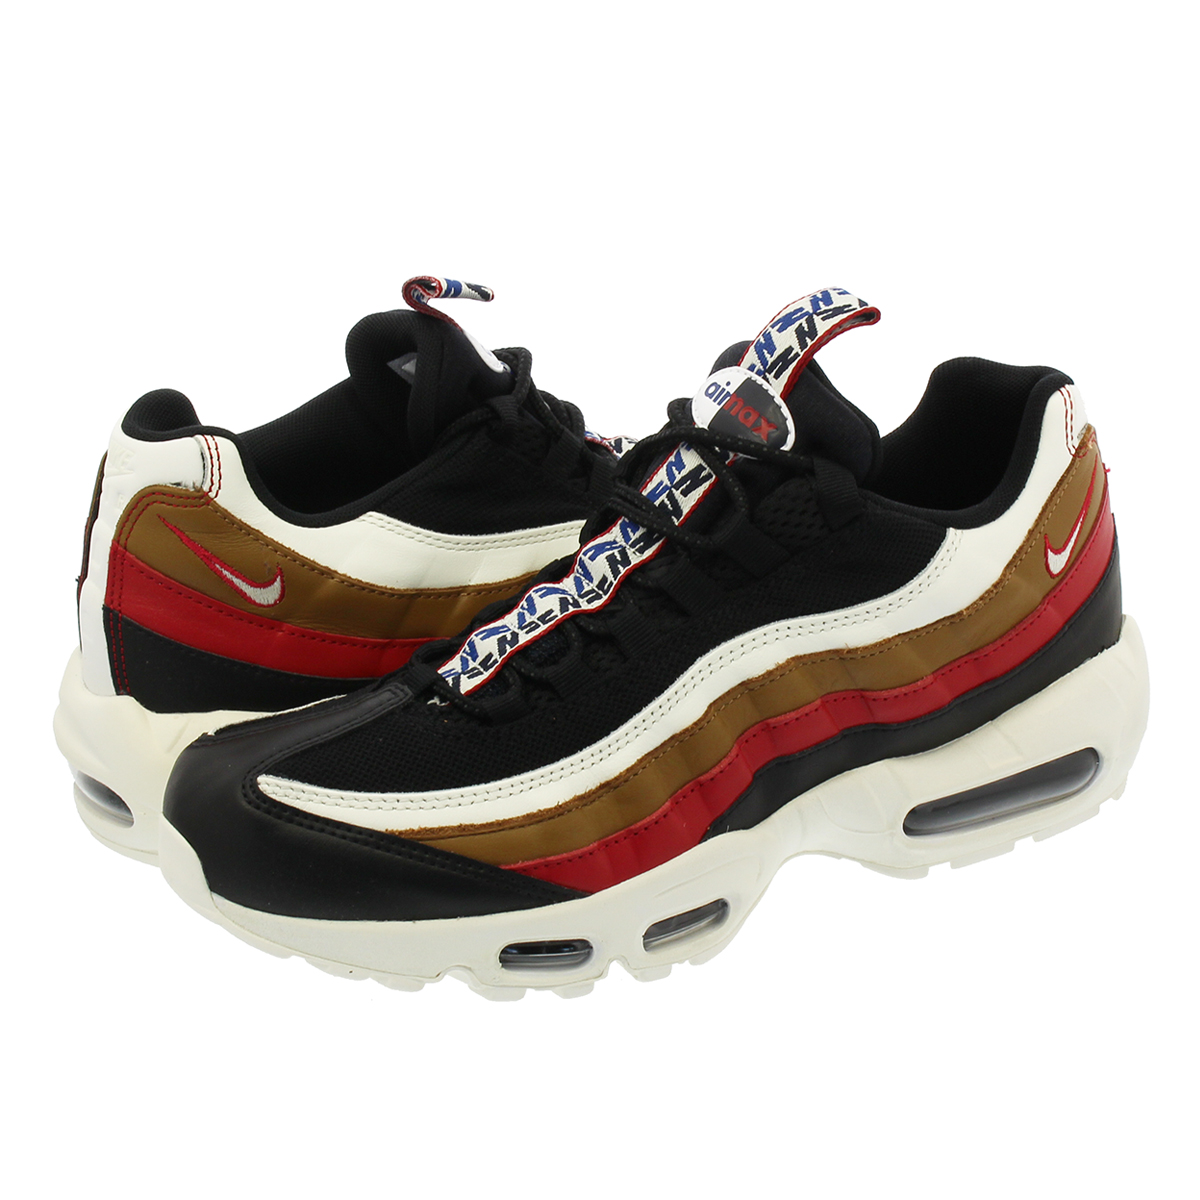 Nike NIKE Air Max 95 essential sneakers men AIR MAX 95 ESSENTIAL 7,497,664 034 black black [197]